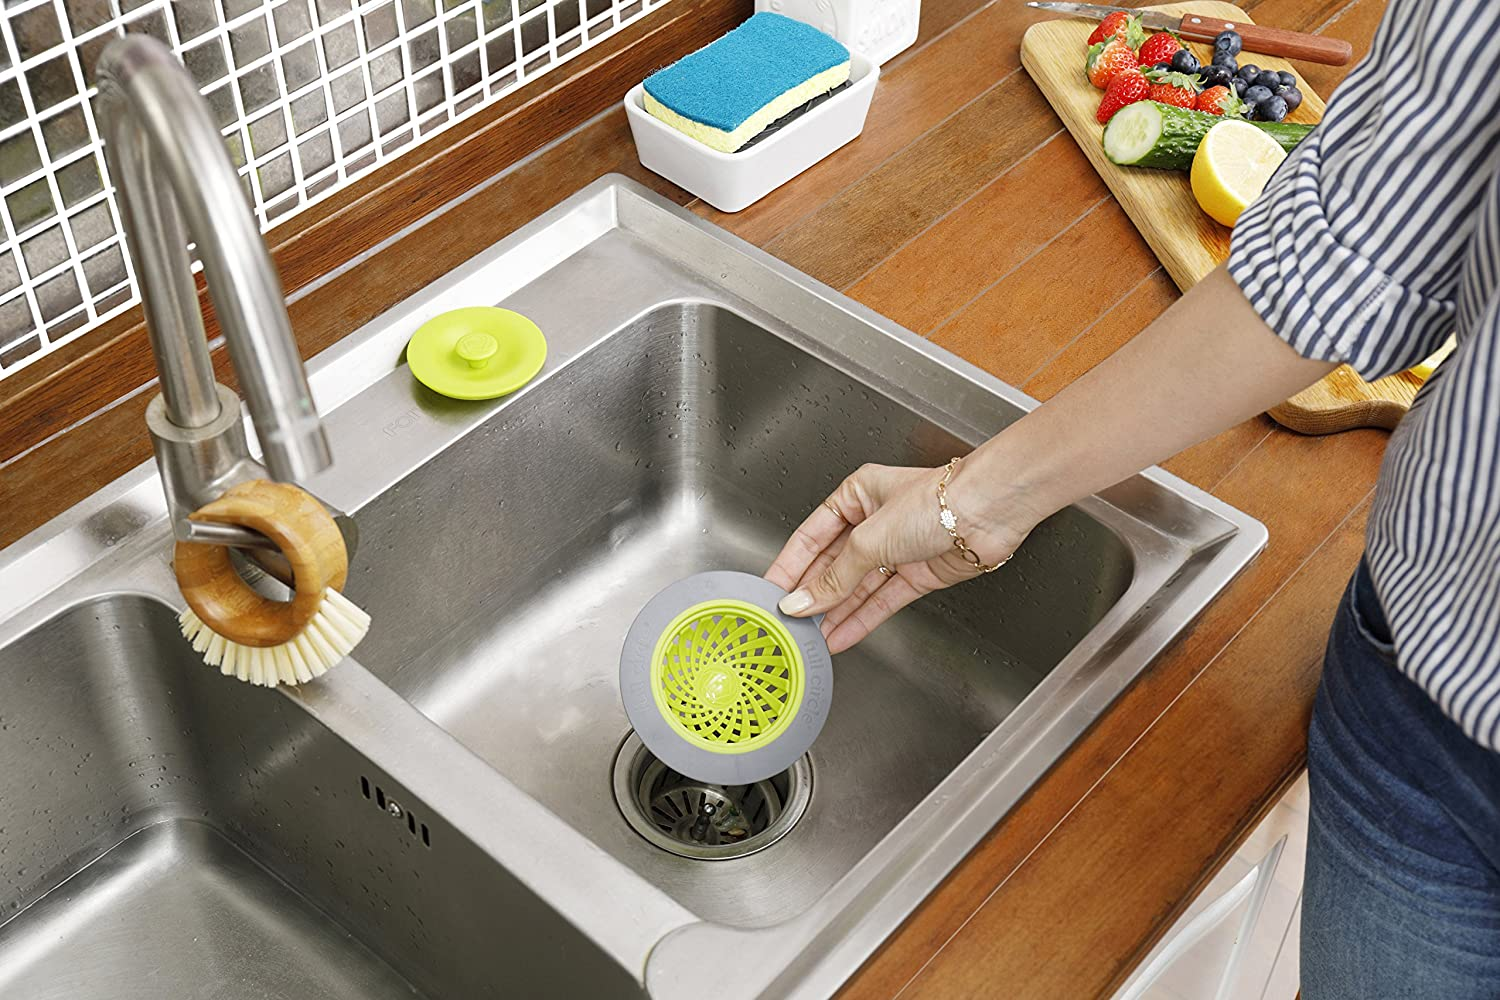 Amazon.com: Full Circle Sinksational Sink Strainer with Stopper ...